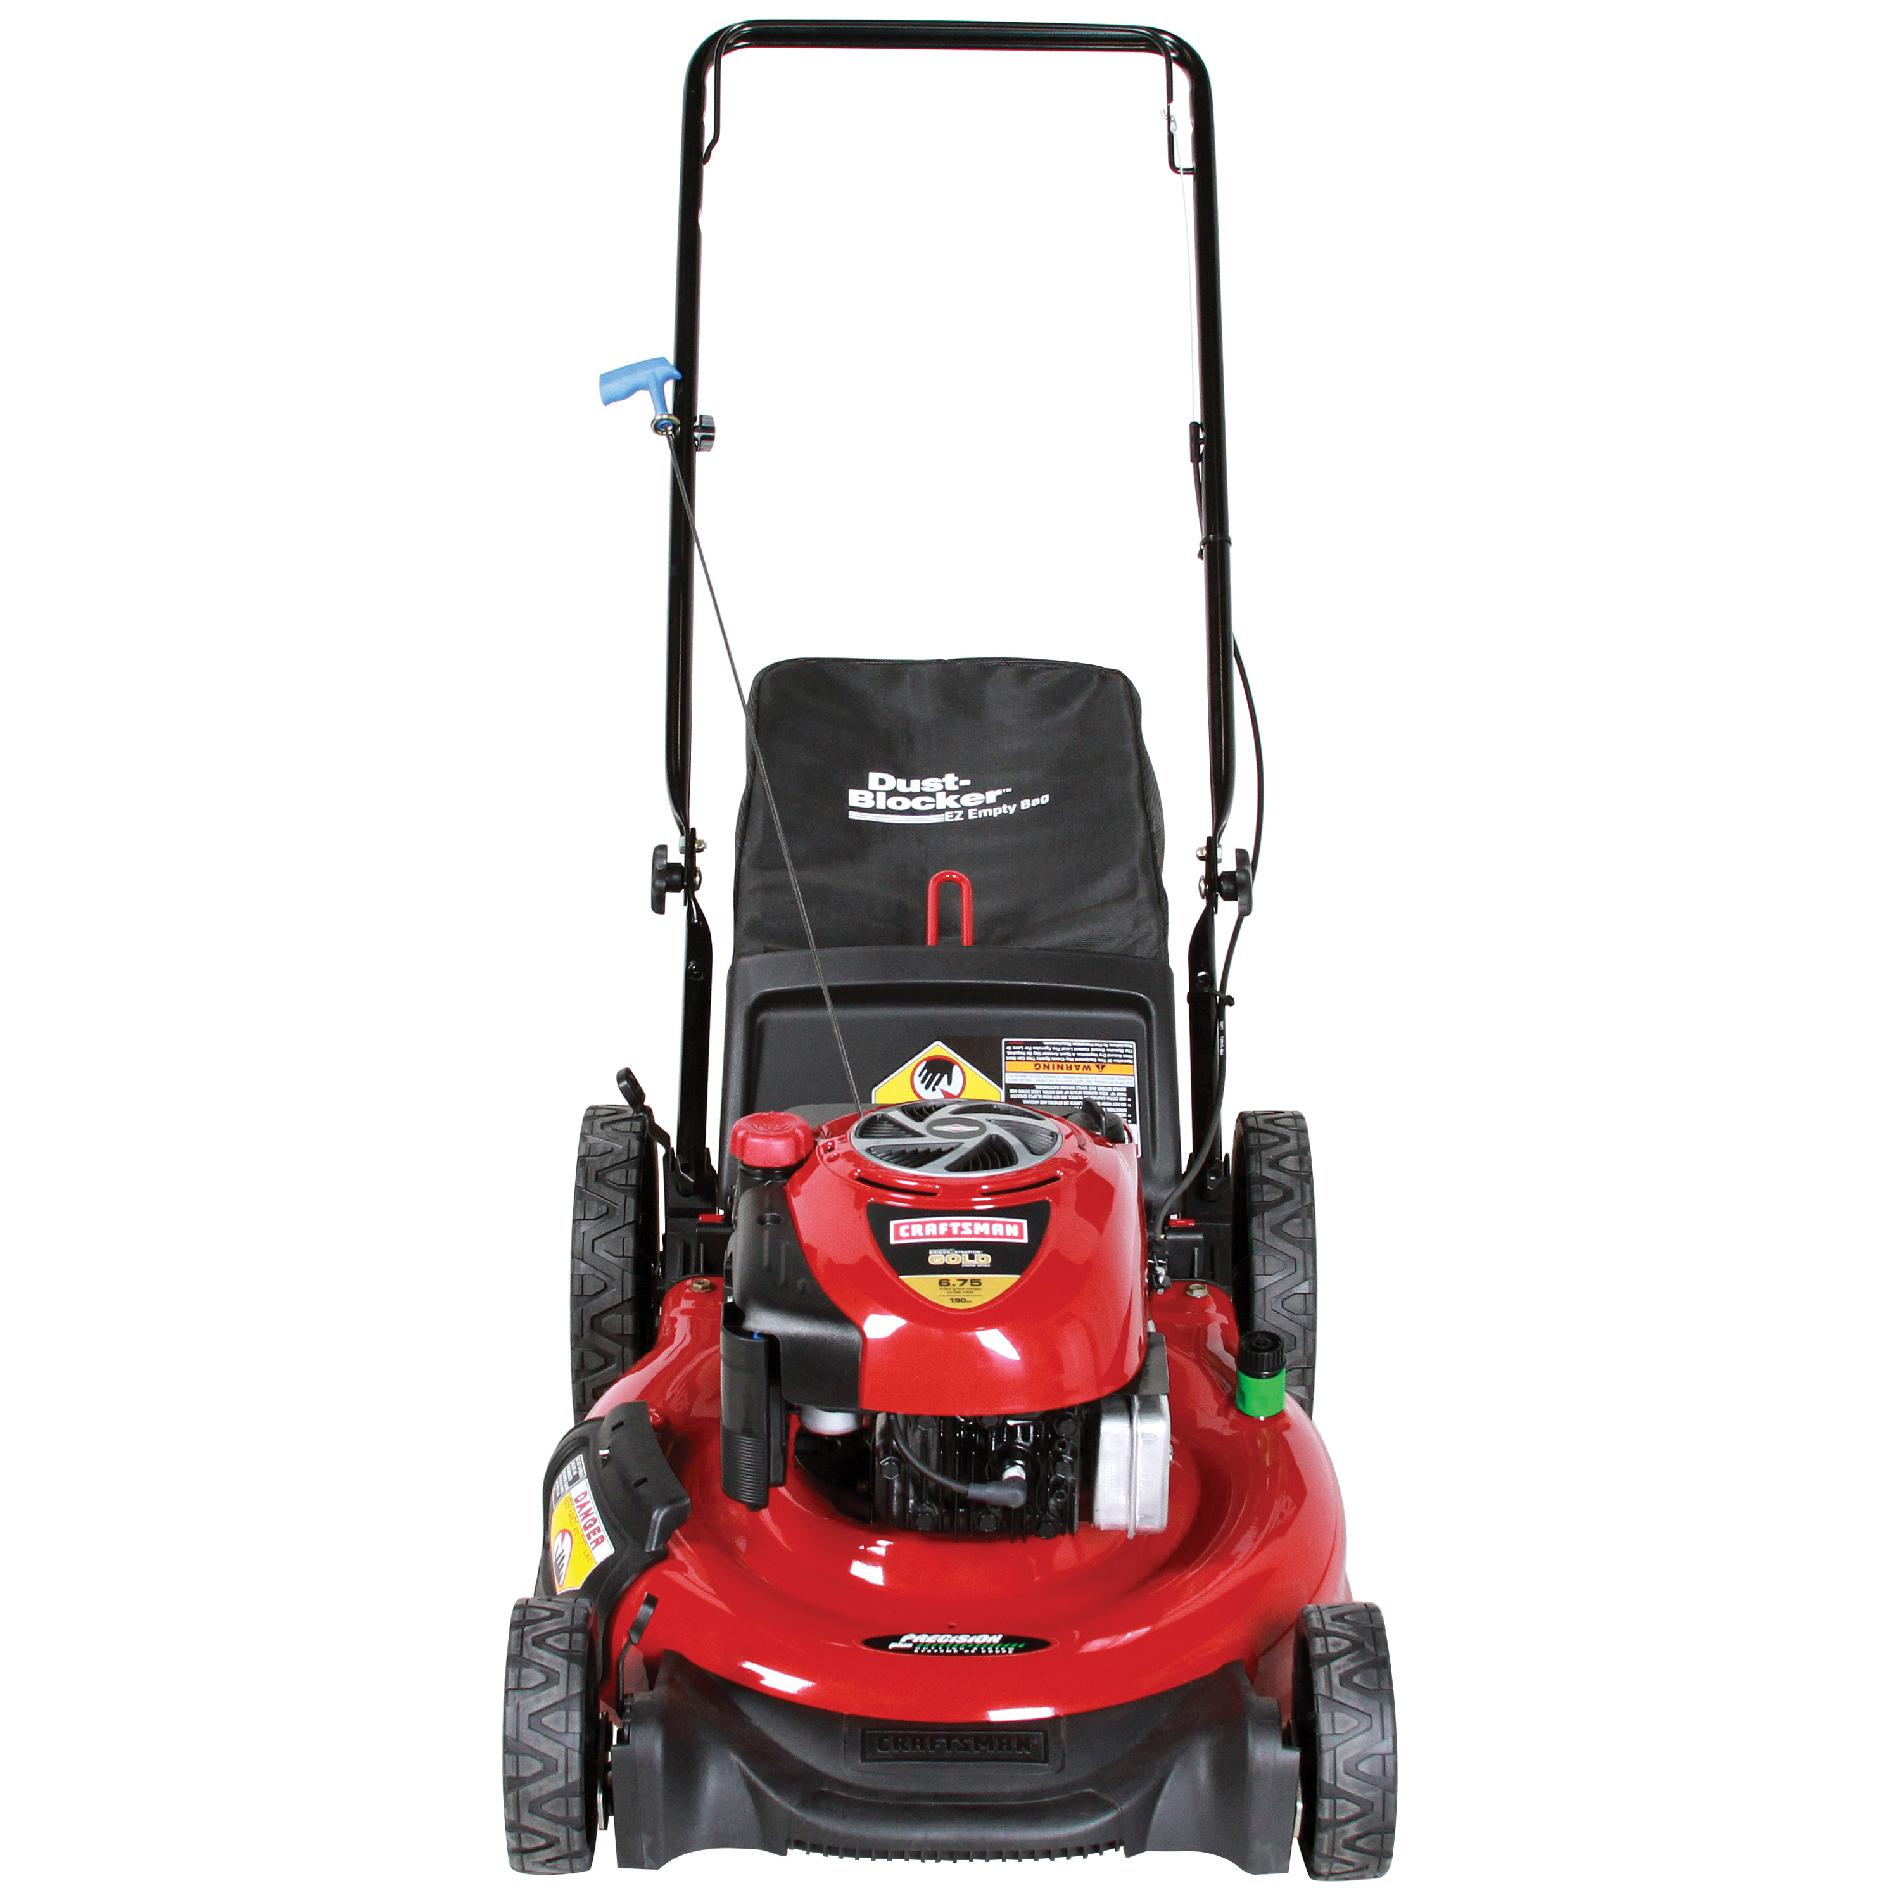 Craftsman 190cc* Briggs & Stratton Engine, High-Wheel Rear Bag Push Mower 50 States